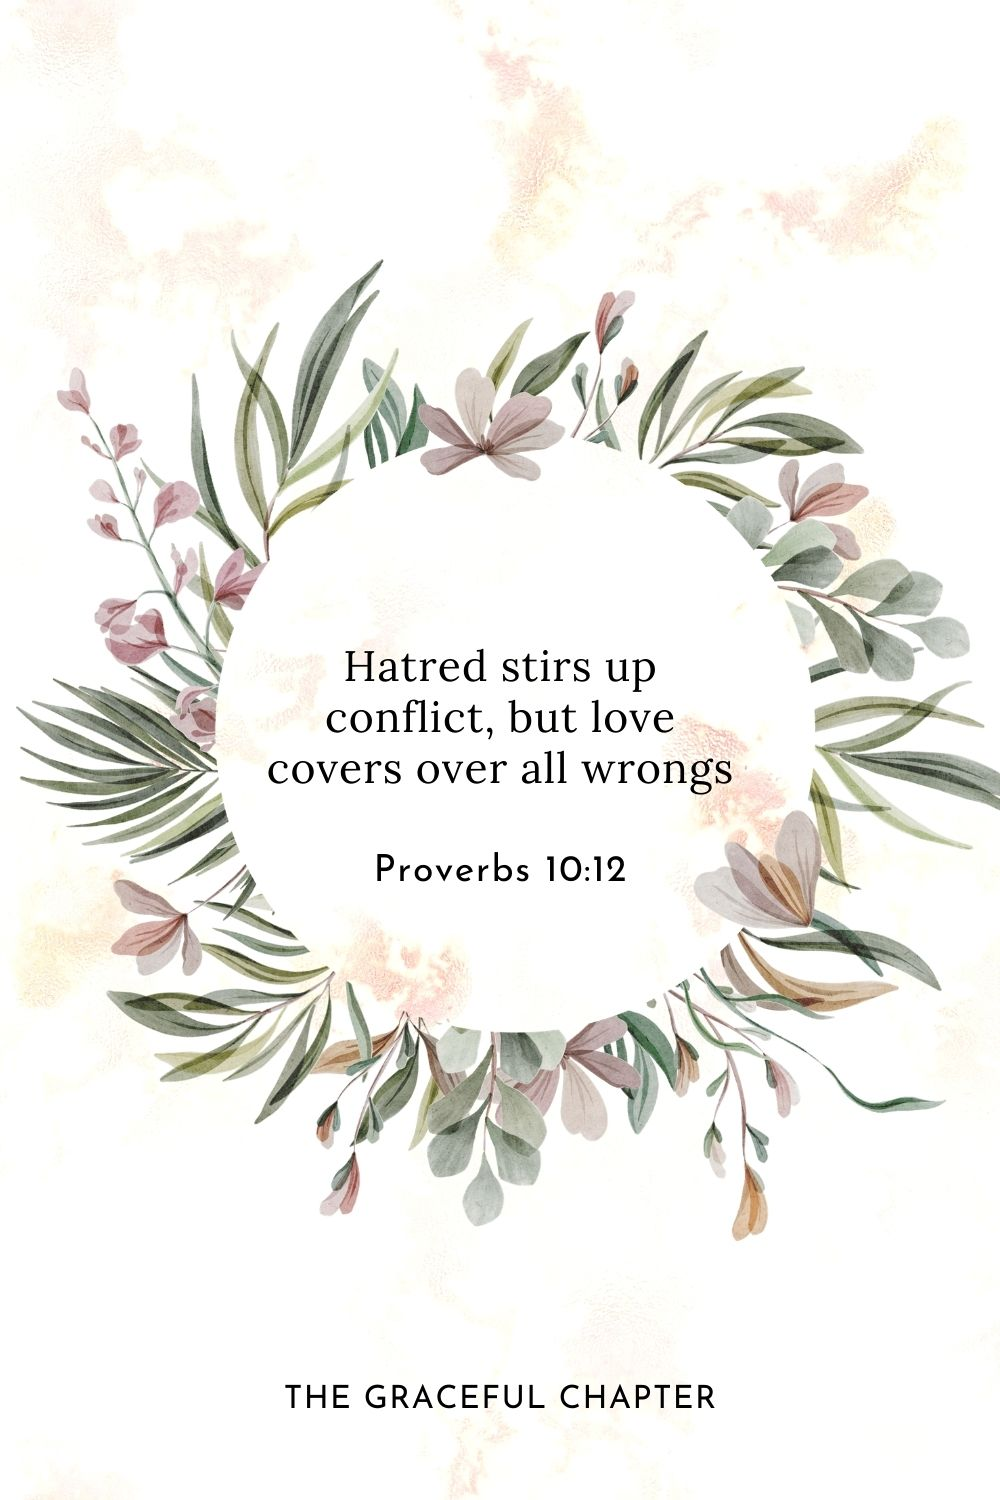 Hatred stirs up conflict, but love covers over all wrongs Proverbs 10:12